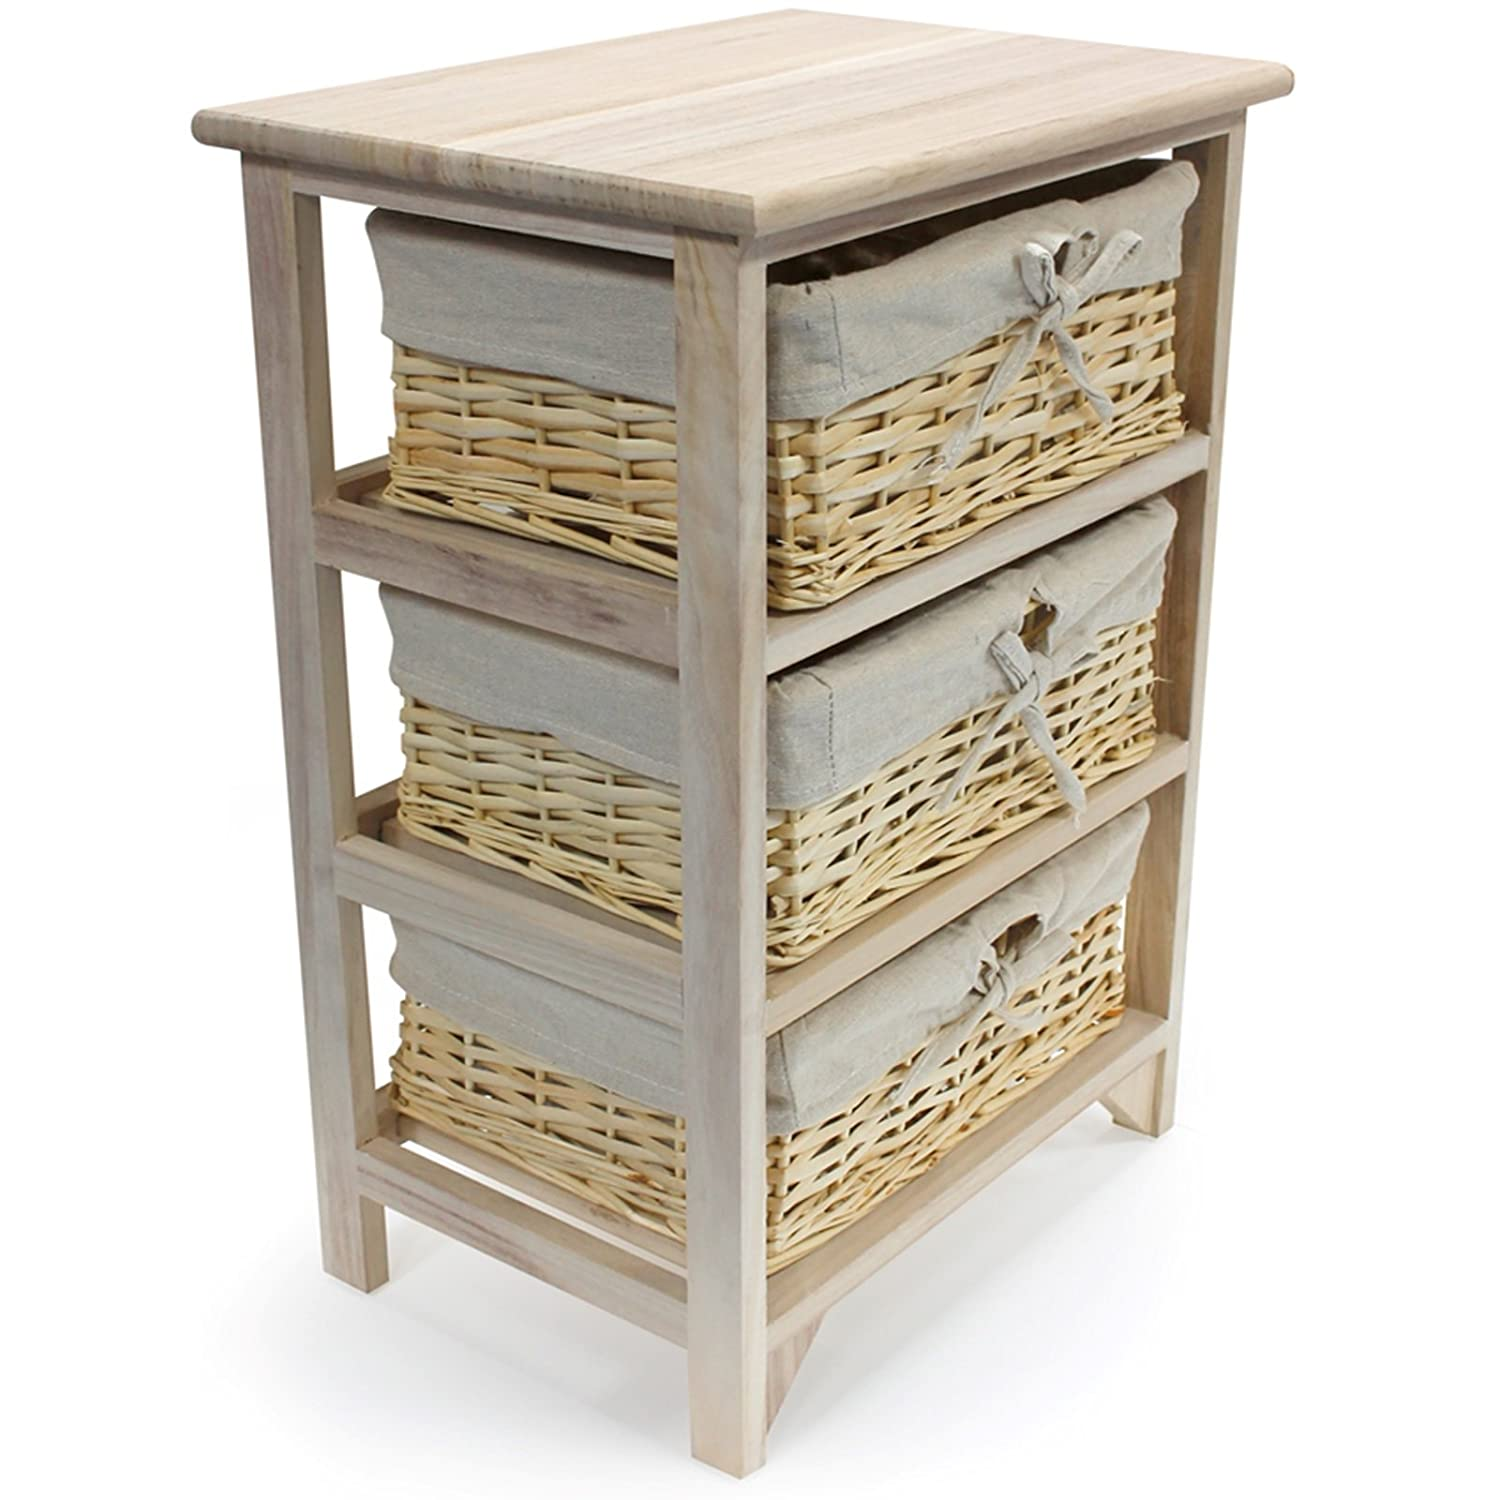 Tetbury white storage unit with 5 drawers bedroom furniture direct - Sabichi Paulownia 3 Tier Drawer Wooden Storage Cabinet With Wicker Baskets Bedroom Bedside Unit Furniture